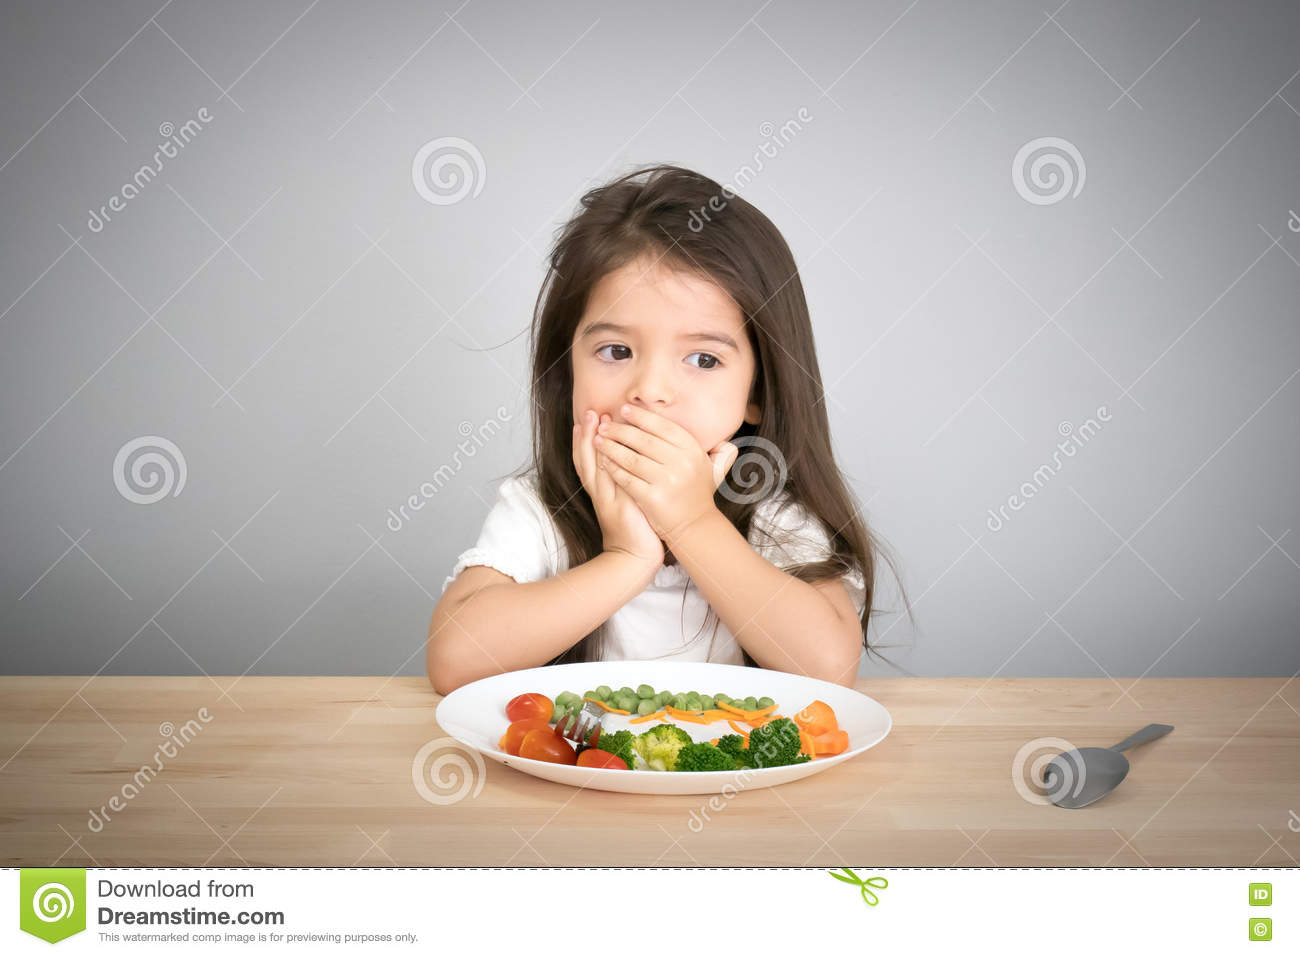 Children don t want to eat vegetables